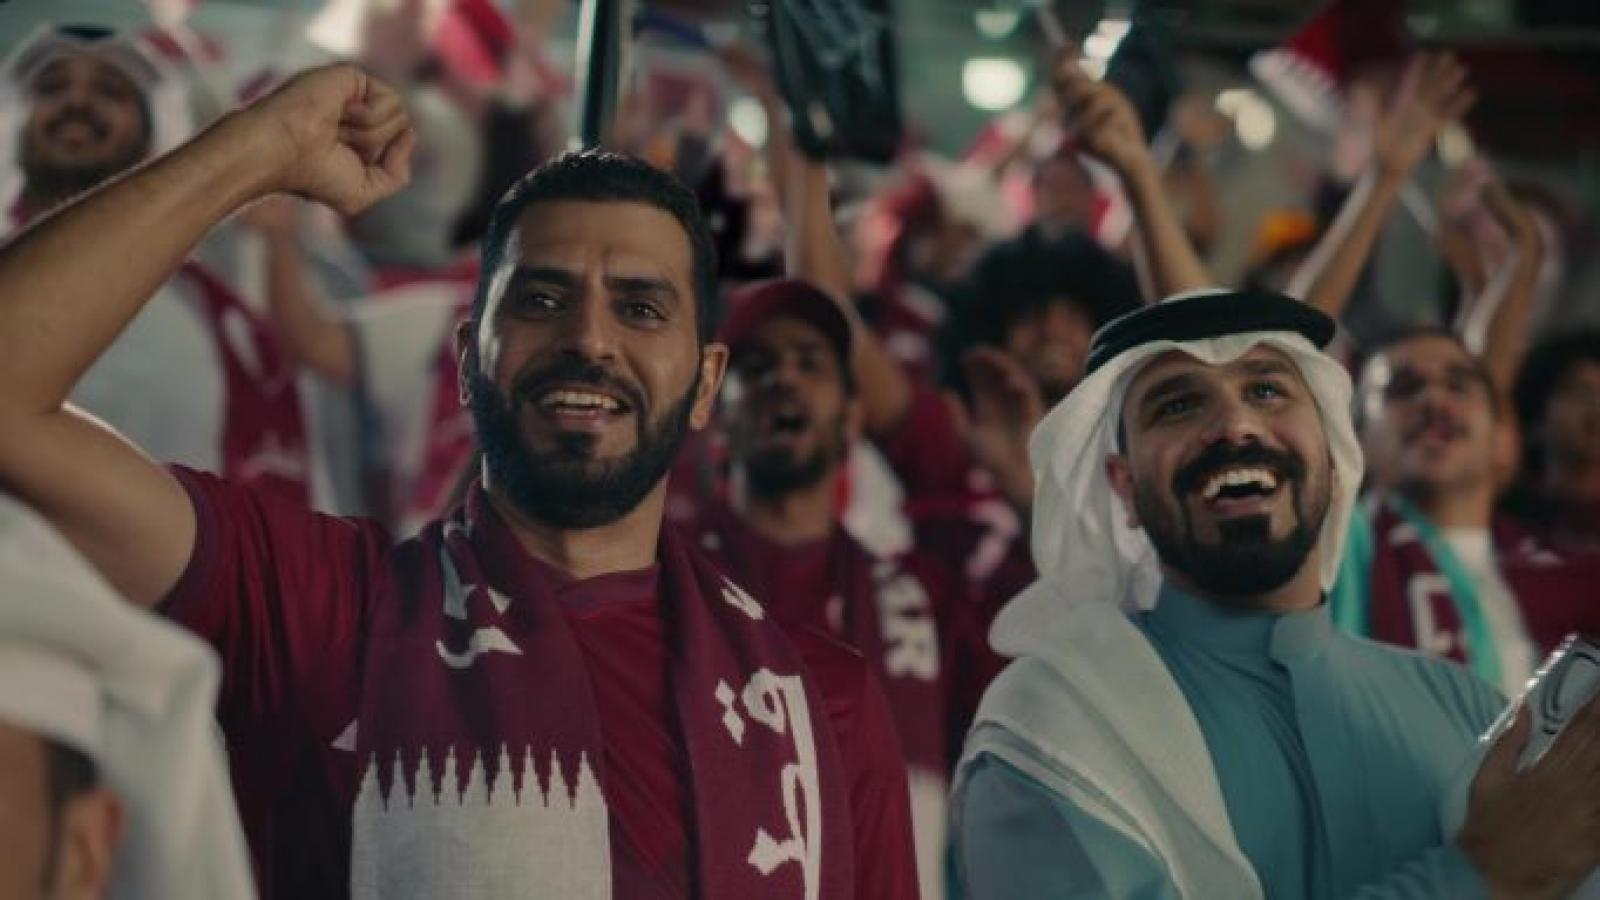 SC launches 'Host a Fan' initiative to welcome visiting supporters during upcoming major tournaments